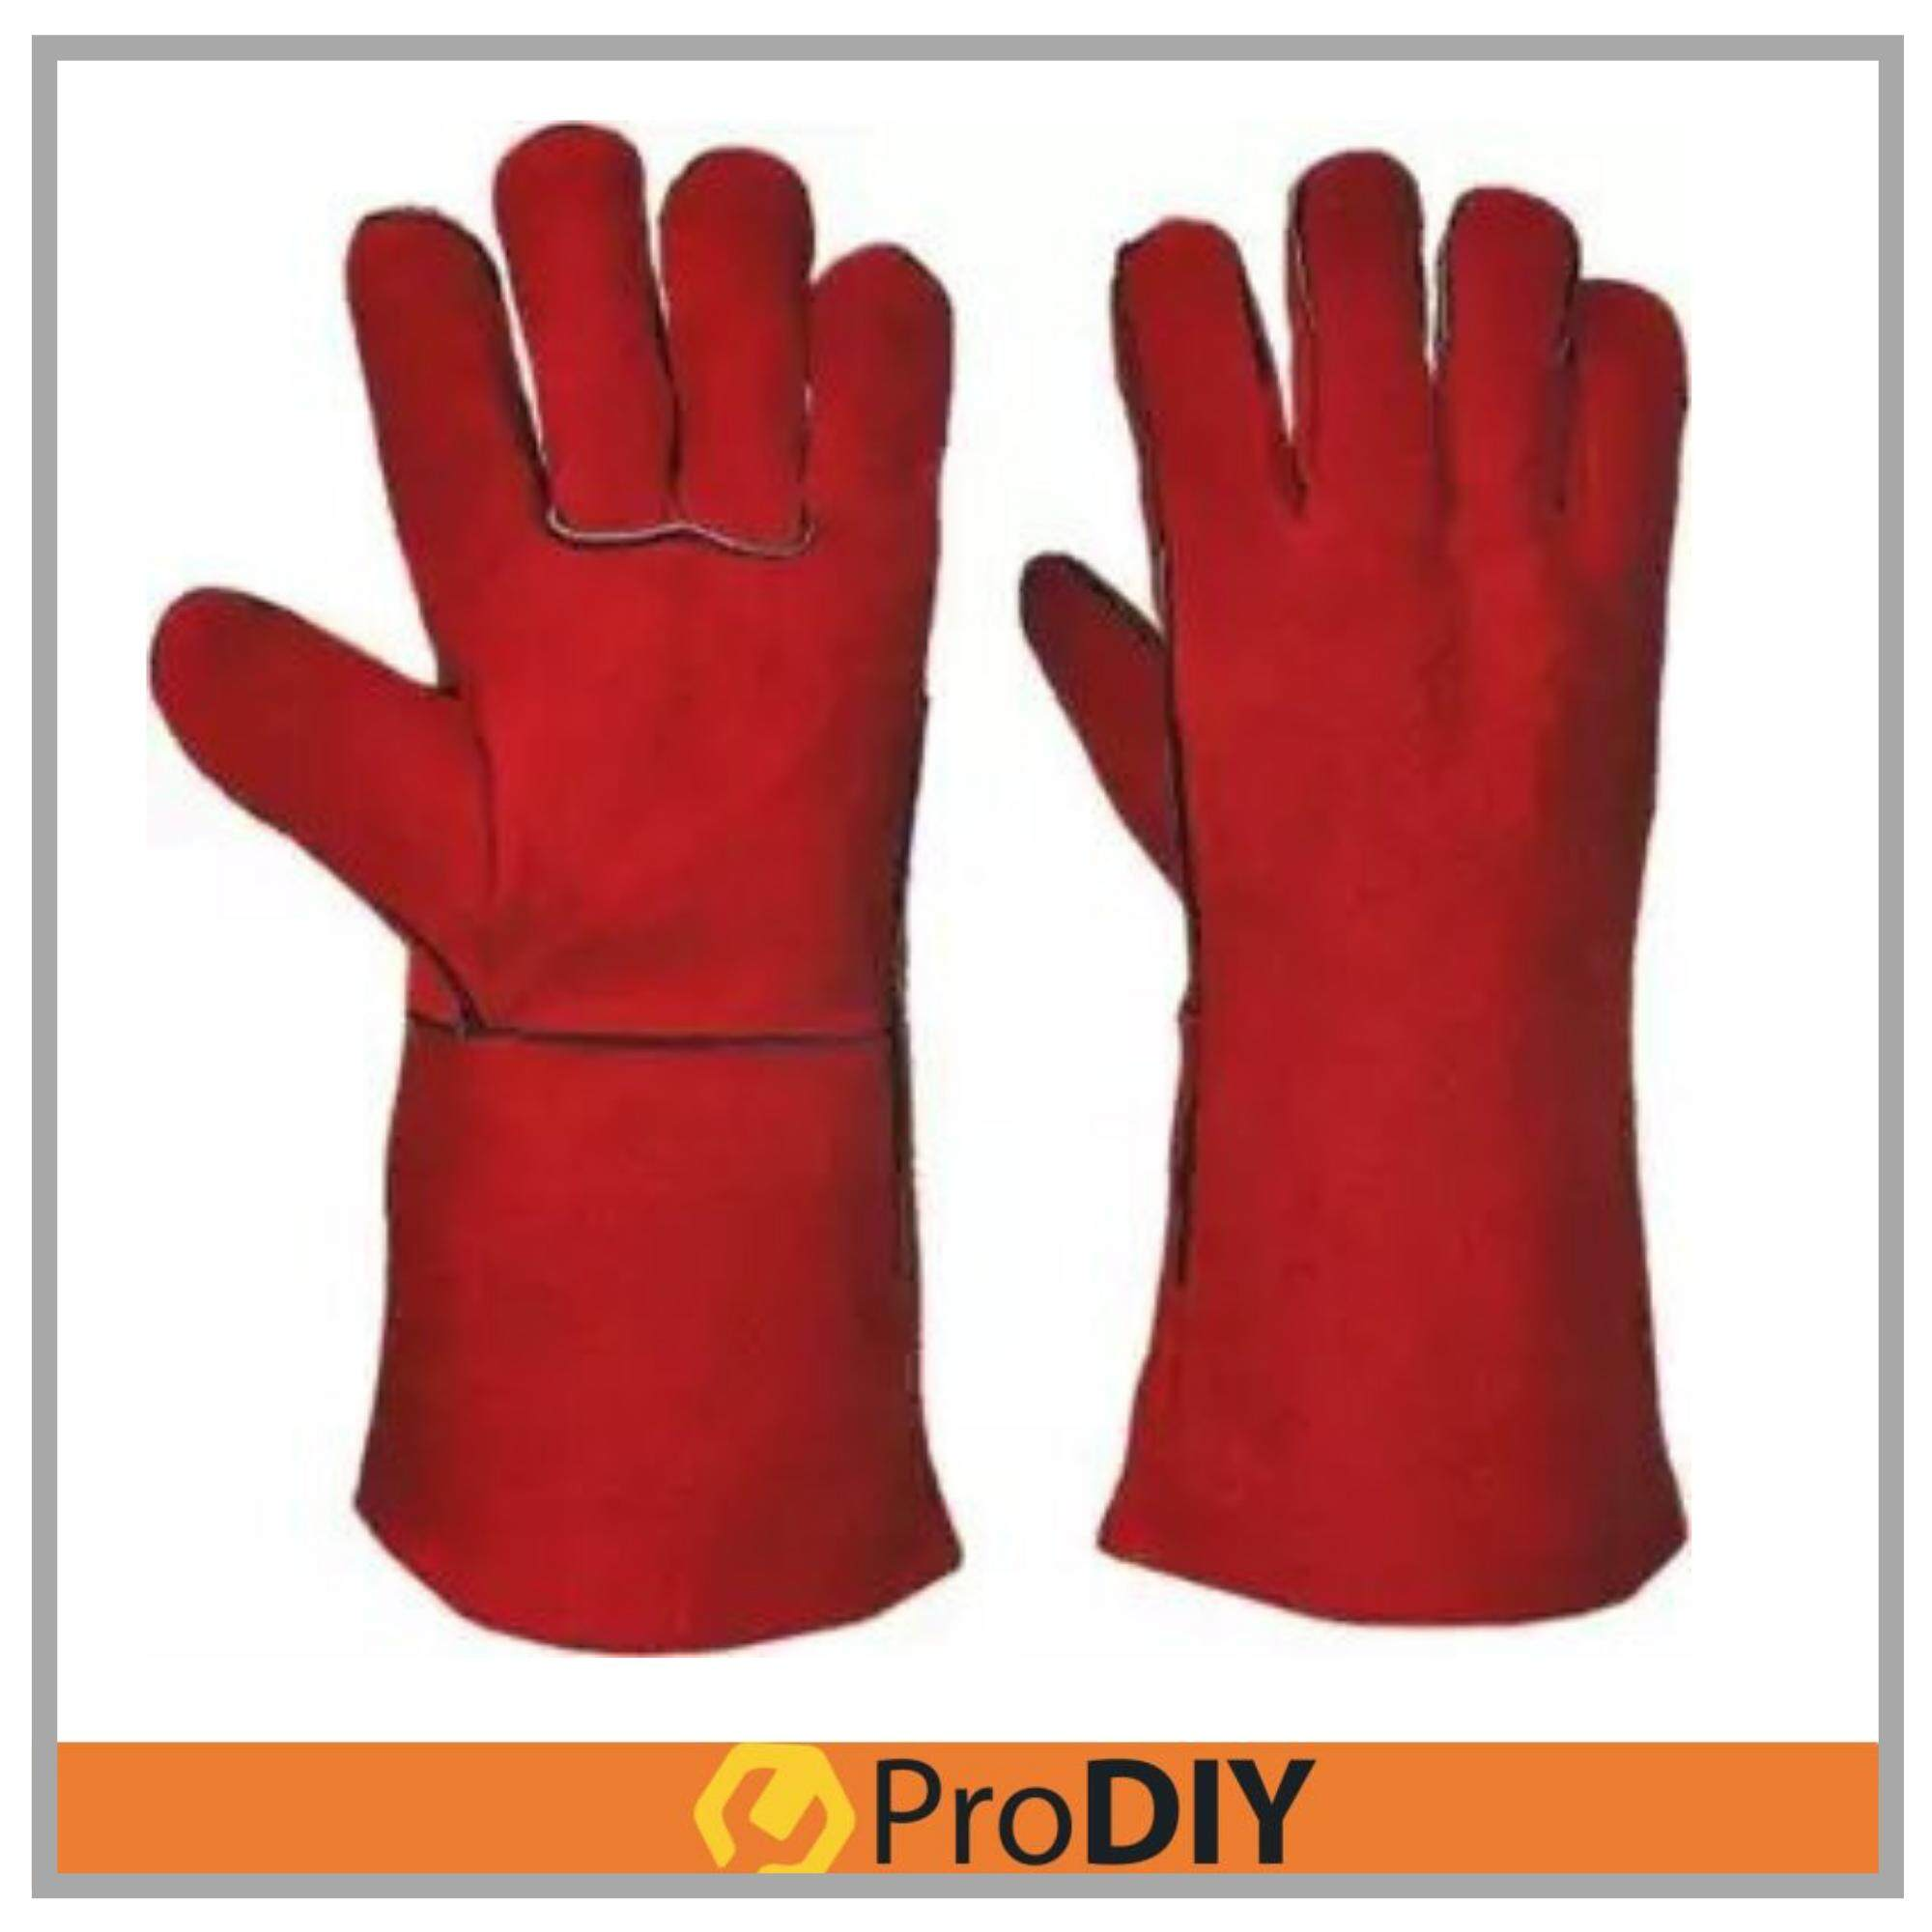 1 Pair of 13 Welding Cow Skin Leather Hand Glove